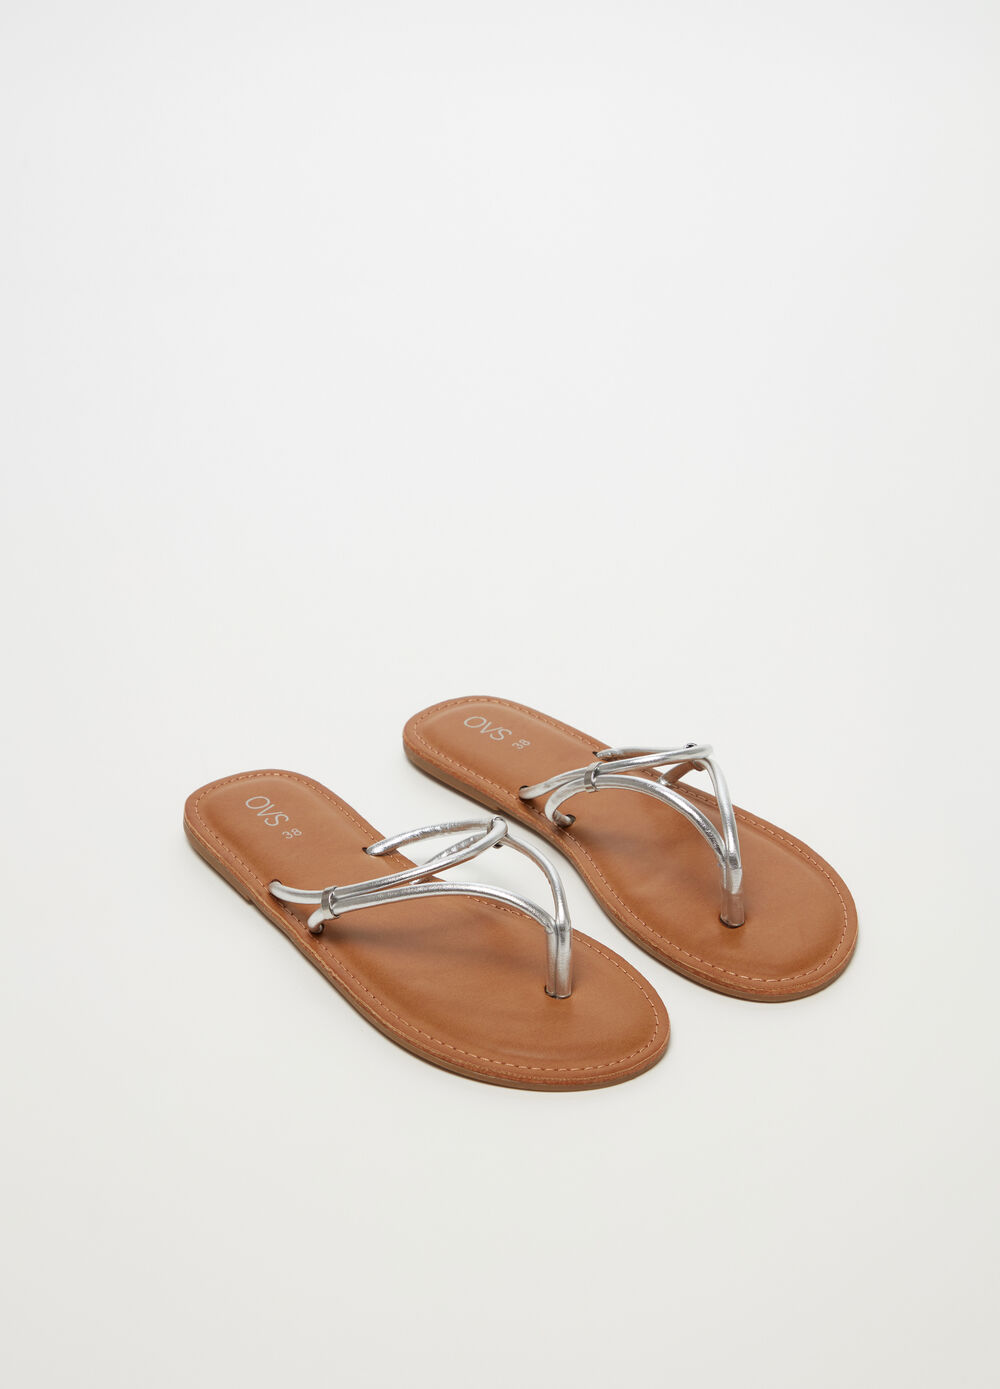 Thong sandals with string and flat heel